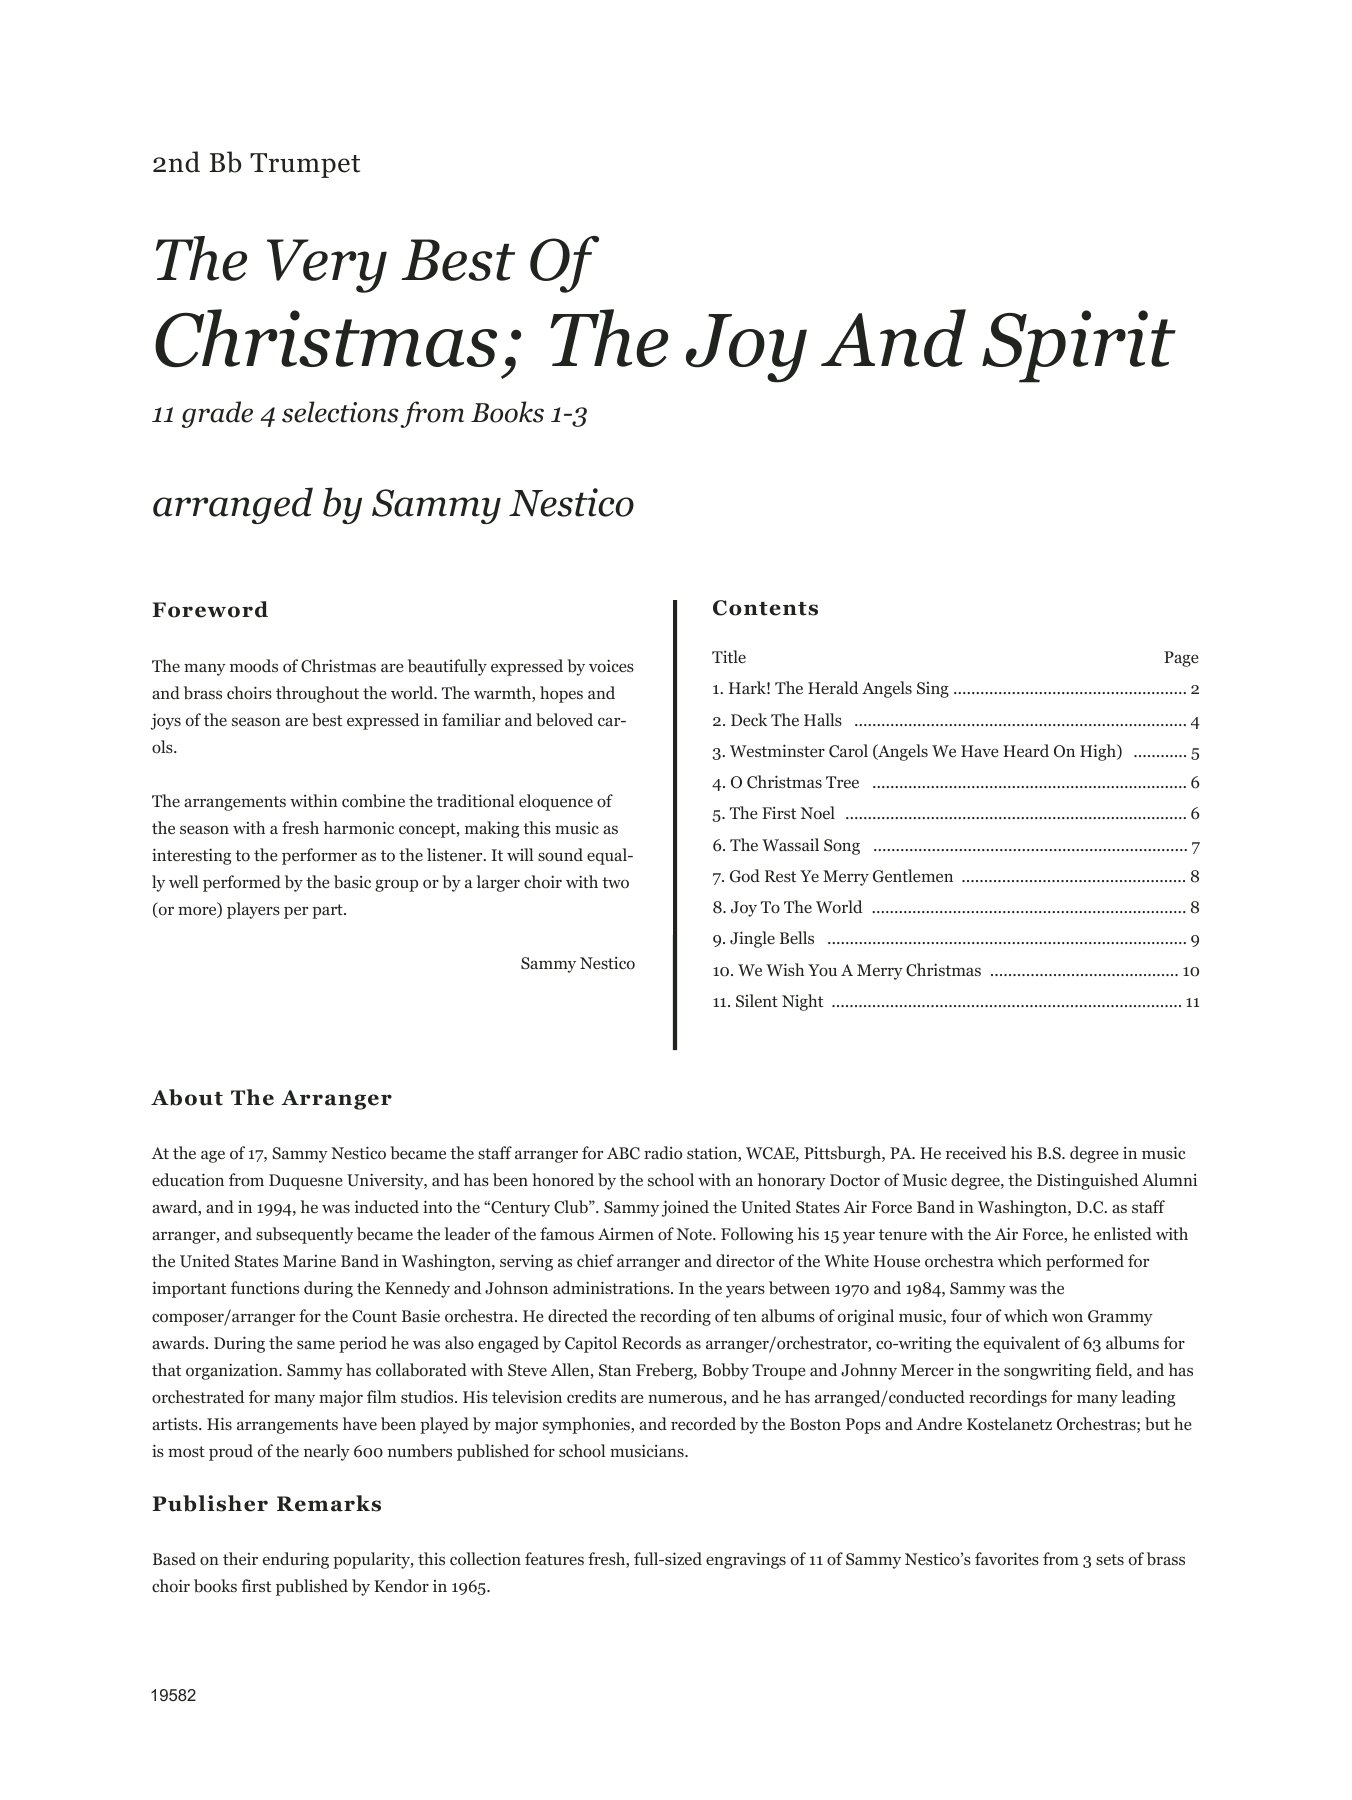 Very Best Of Christmas; The Joy And Spirit (Books 1-3) - 2nd Bb Trumpet Sheet Music